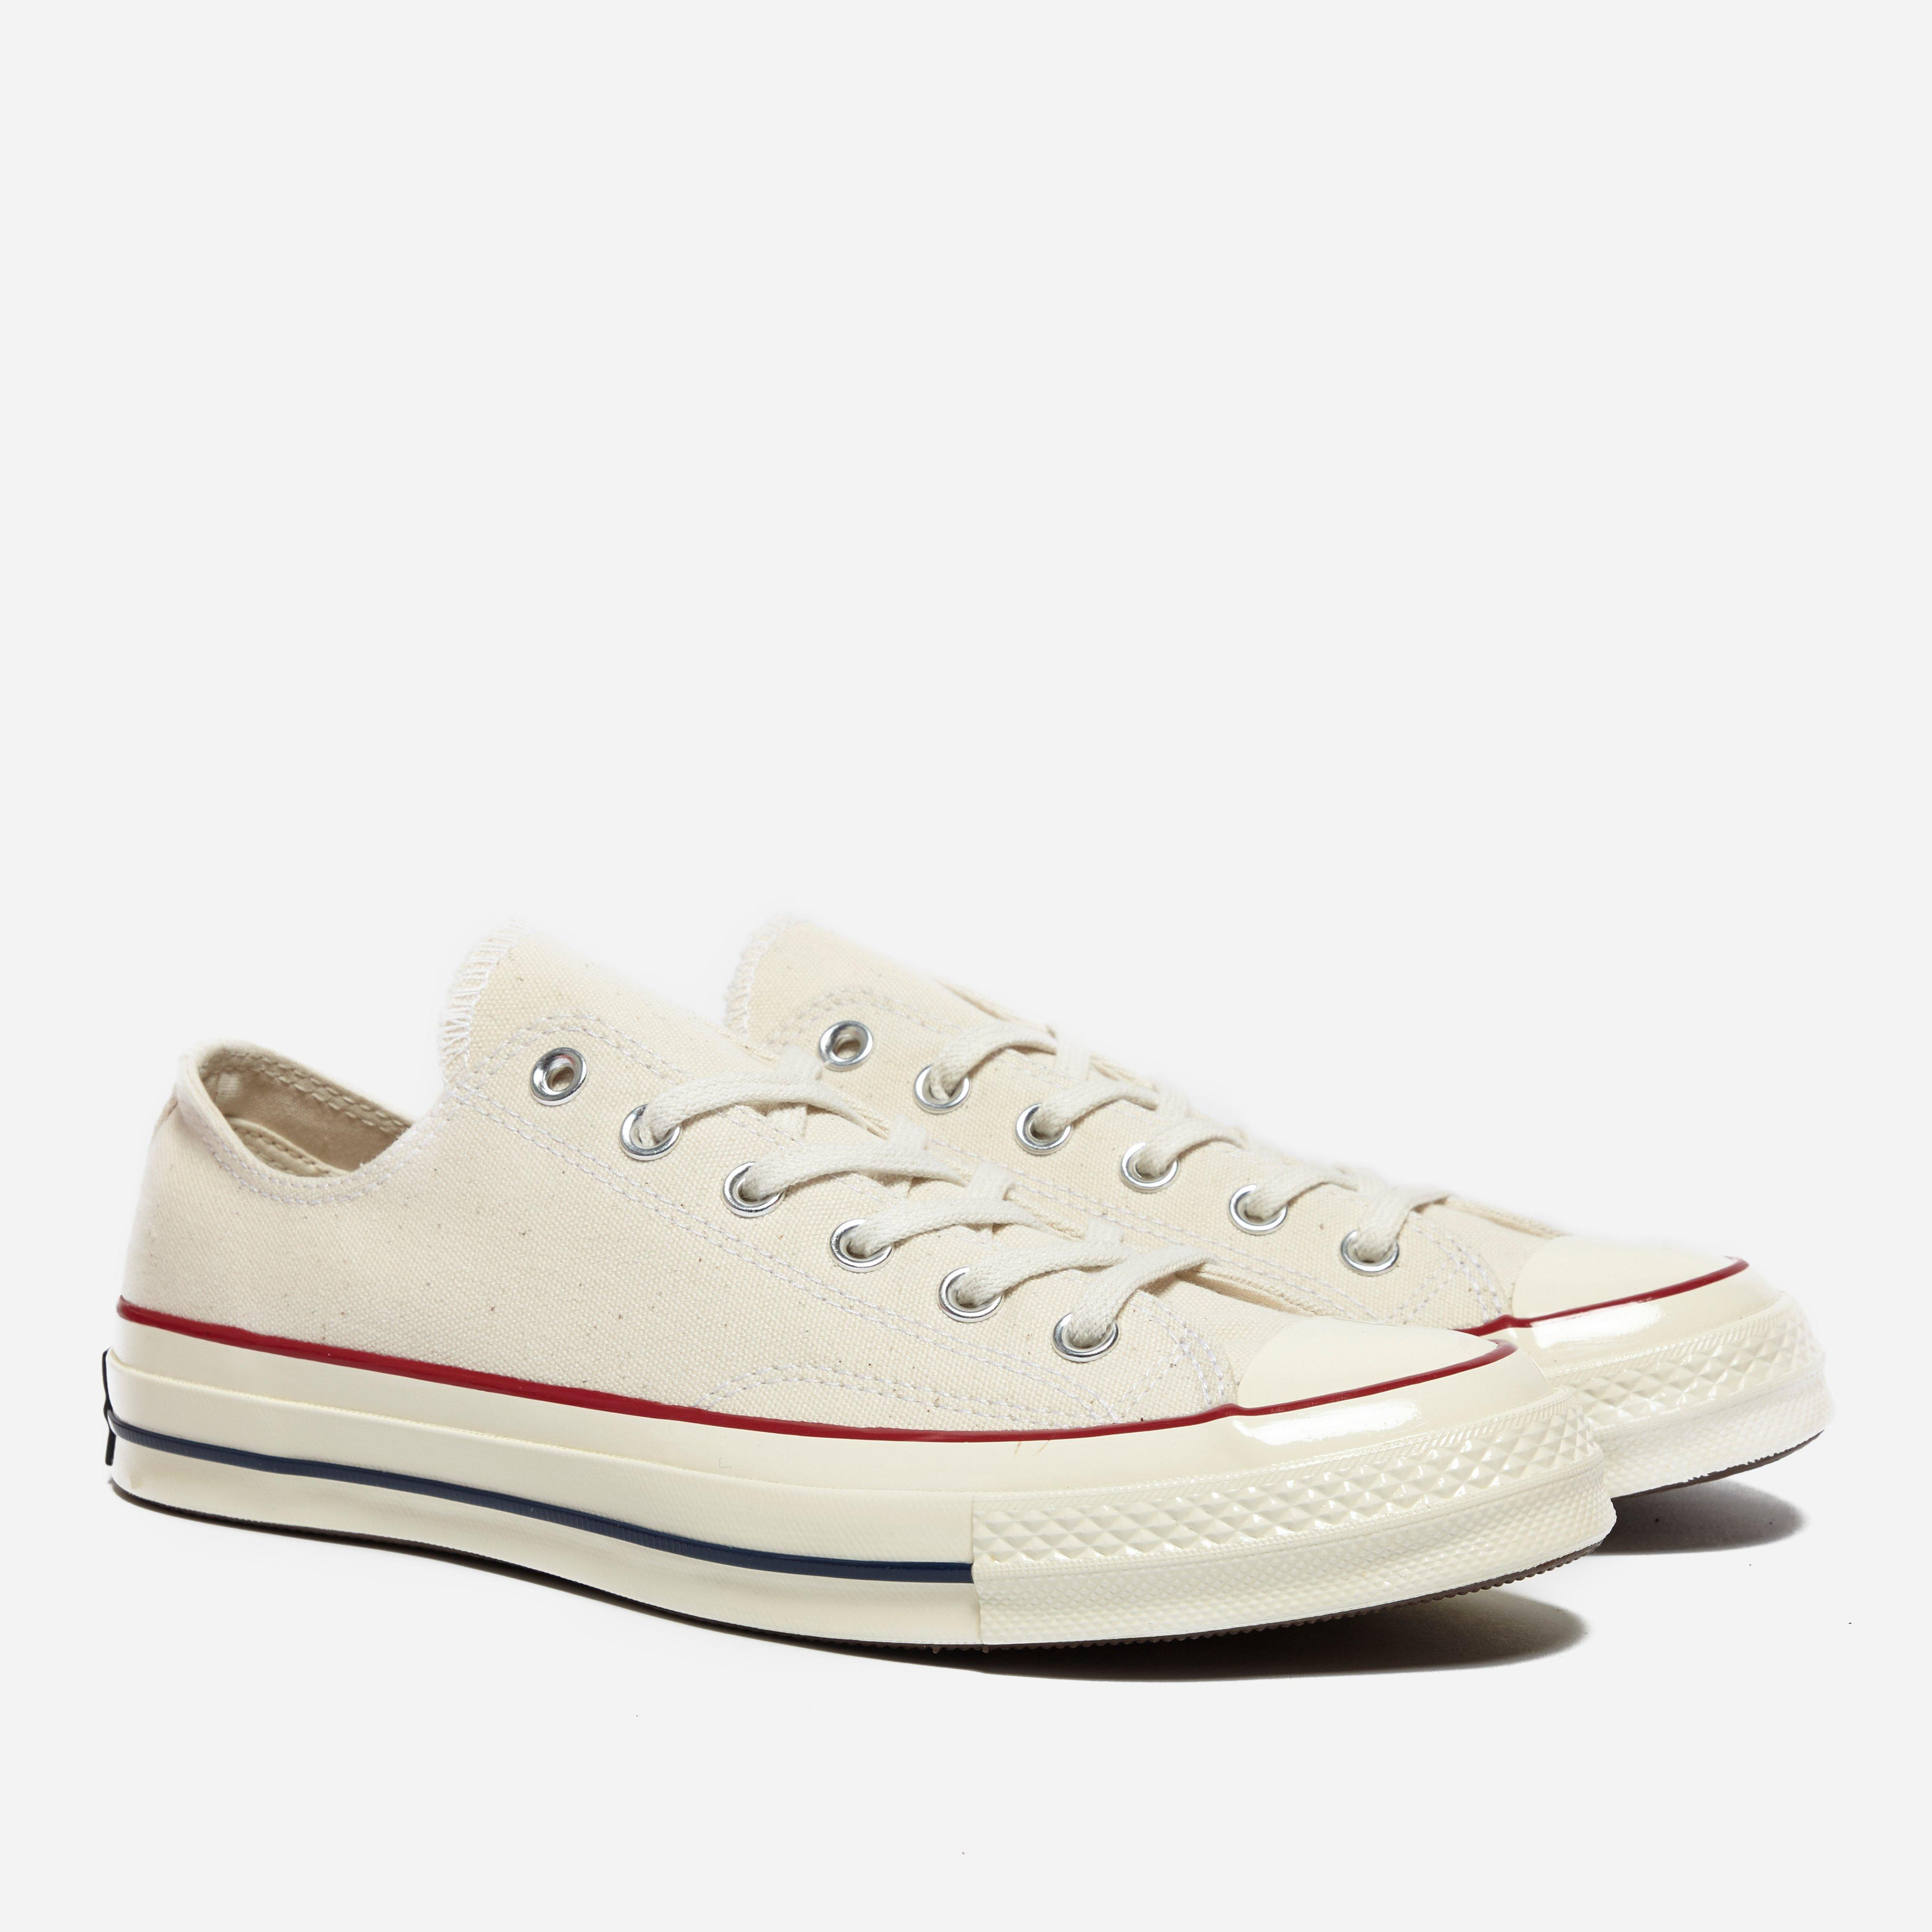 Converse Chuck Taylor All Star 1970 Ox Parchment